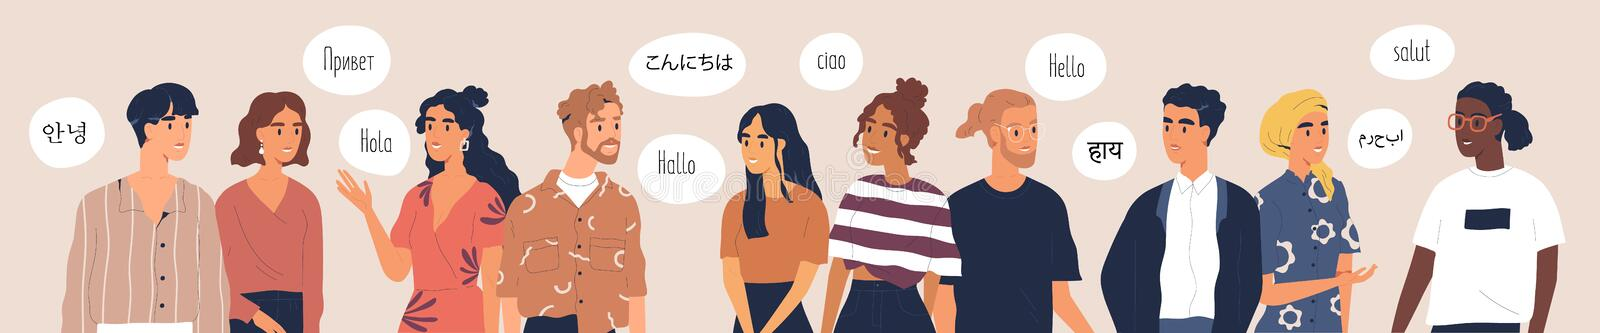 Multilingual greeting flat vector illustration. Hello in different languages. Diverse cultures, international royalty free illustration